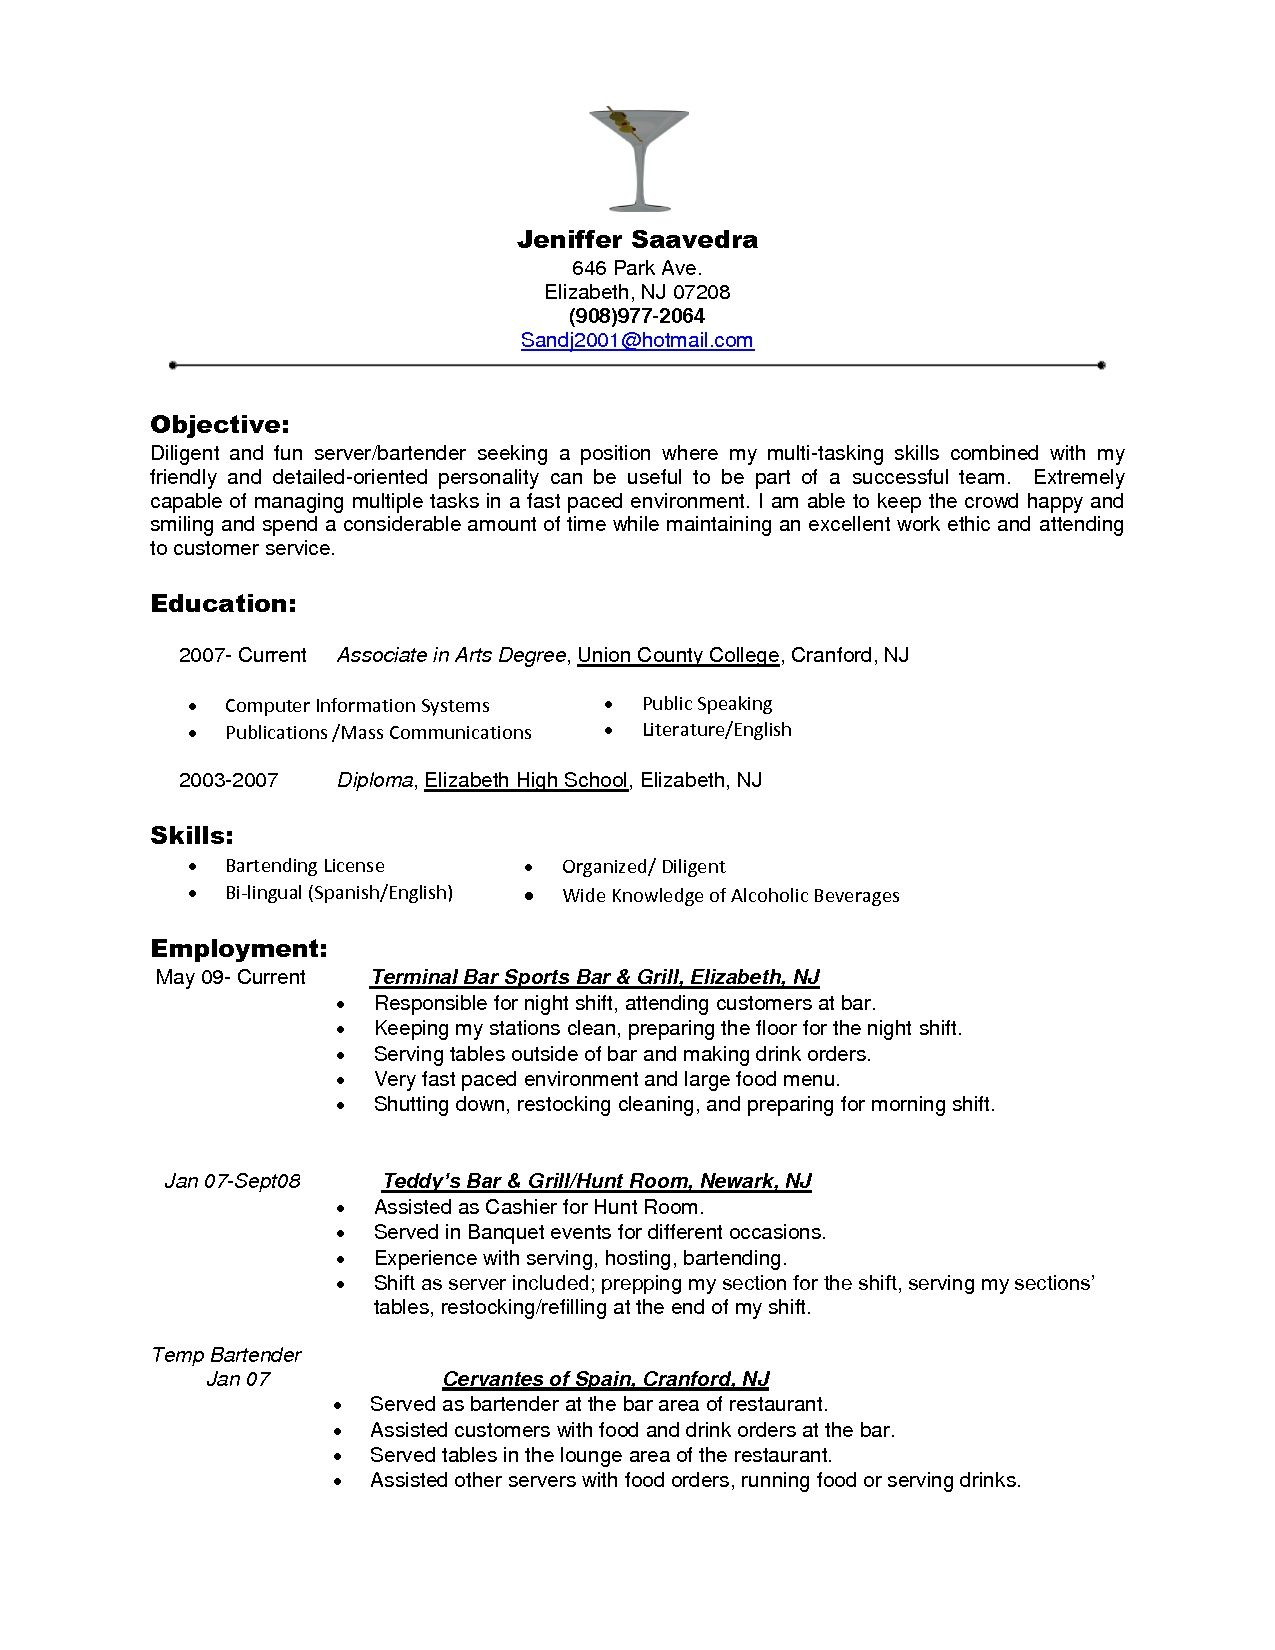 Objectives In Resume Bartender Objectives Resume  Bartender Objectives Resume Will